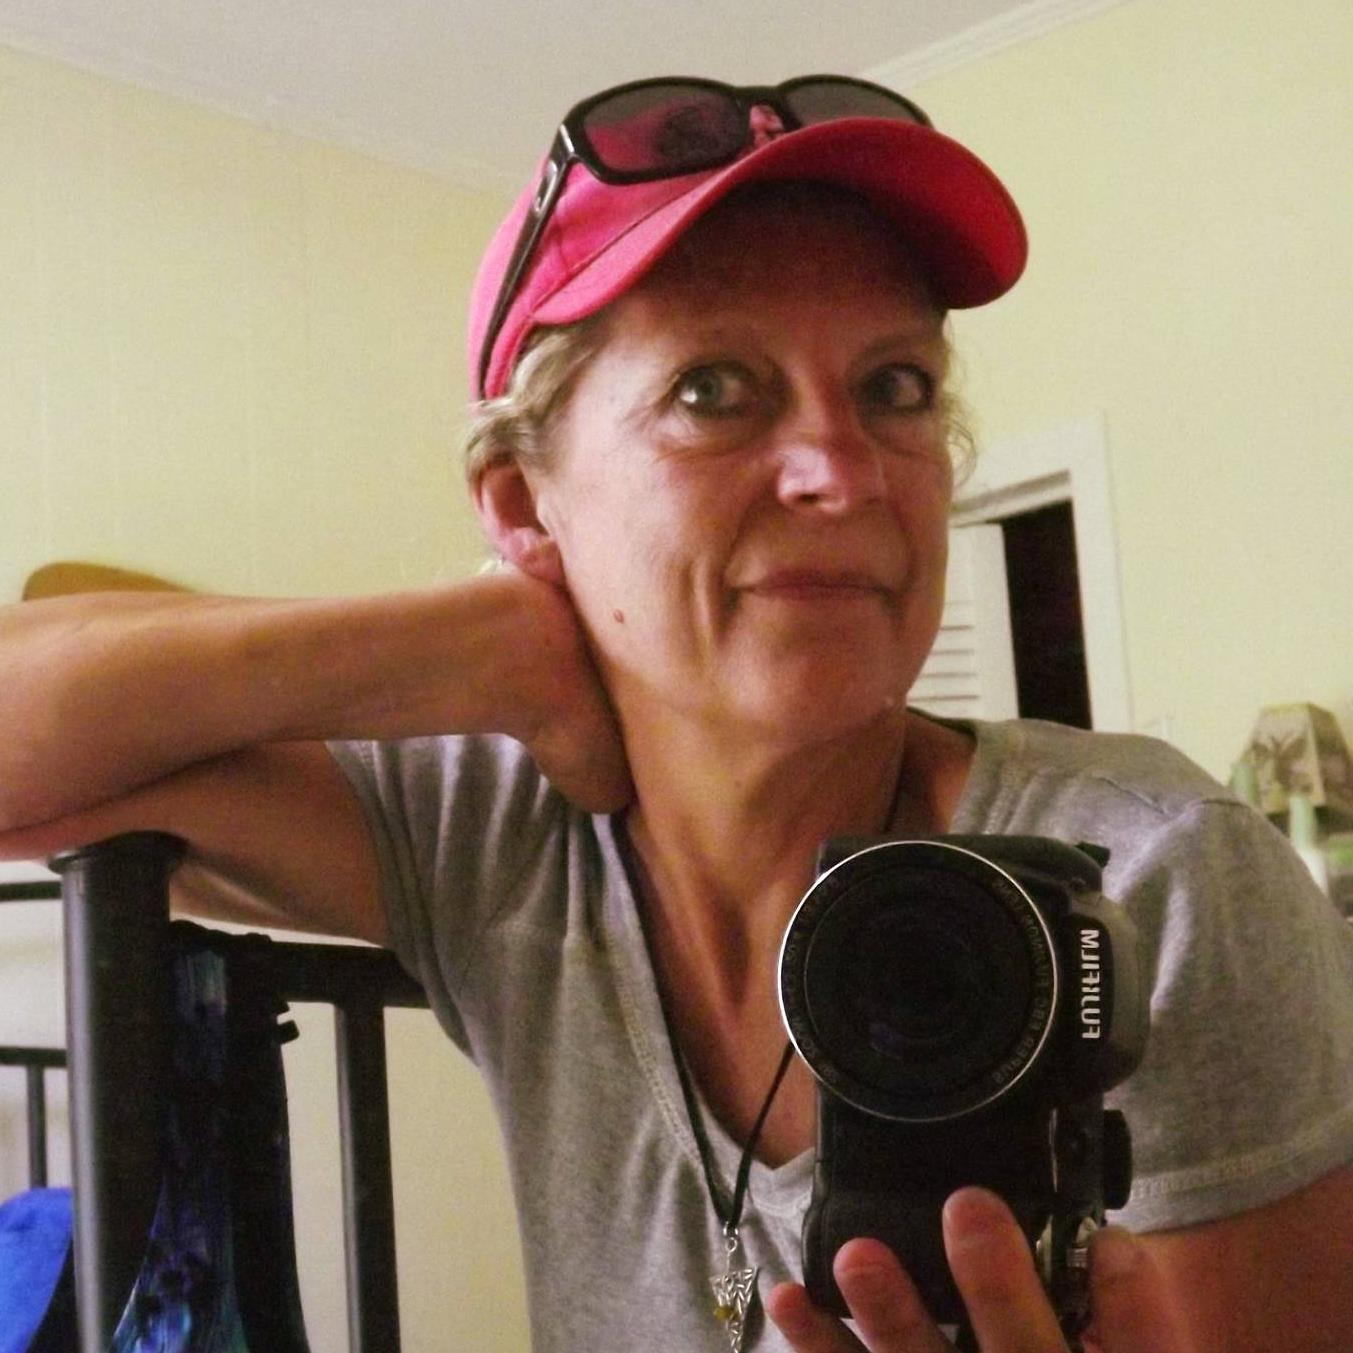 Lorie Lee Steiner profile picture, with her wearing a hat with suglasses on top, and a camera in her hand.